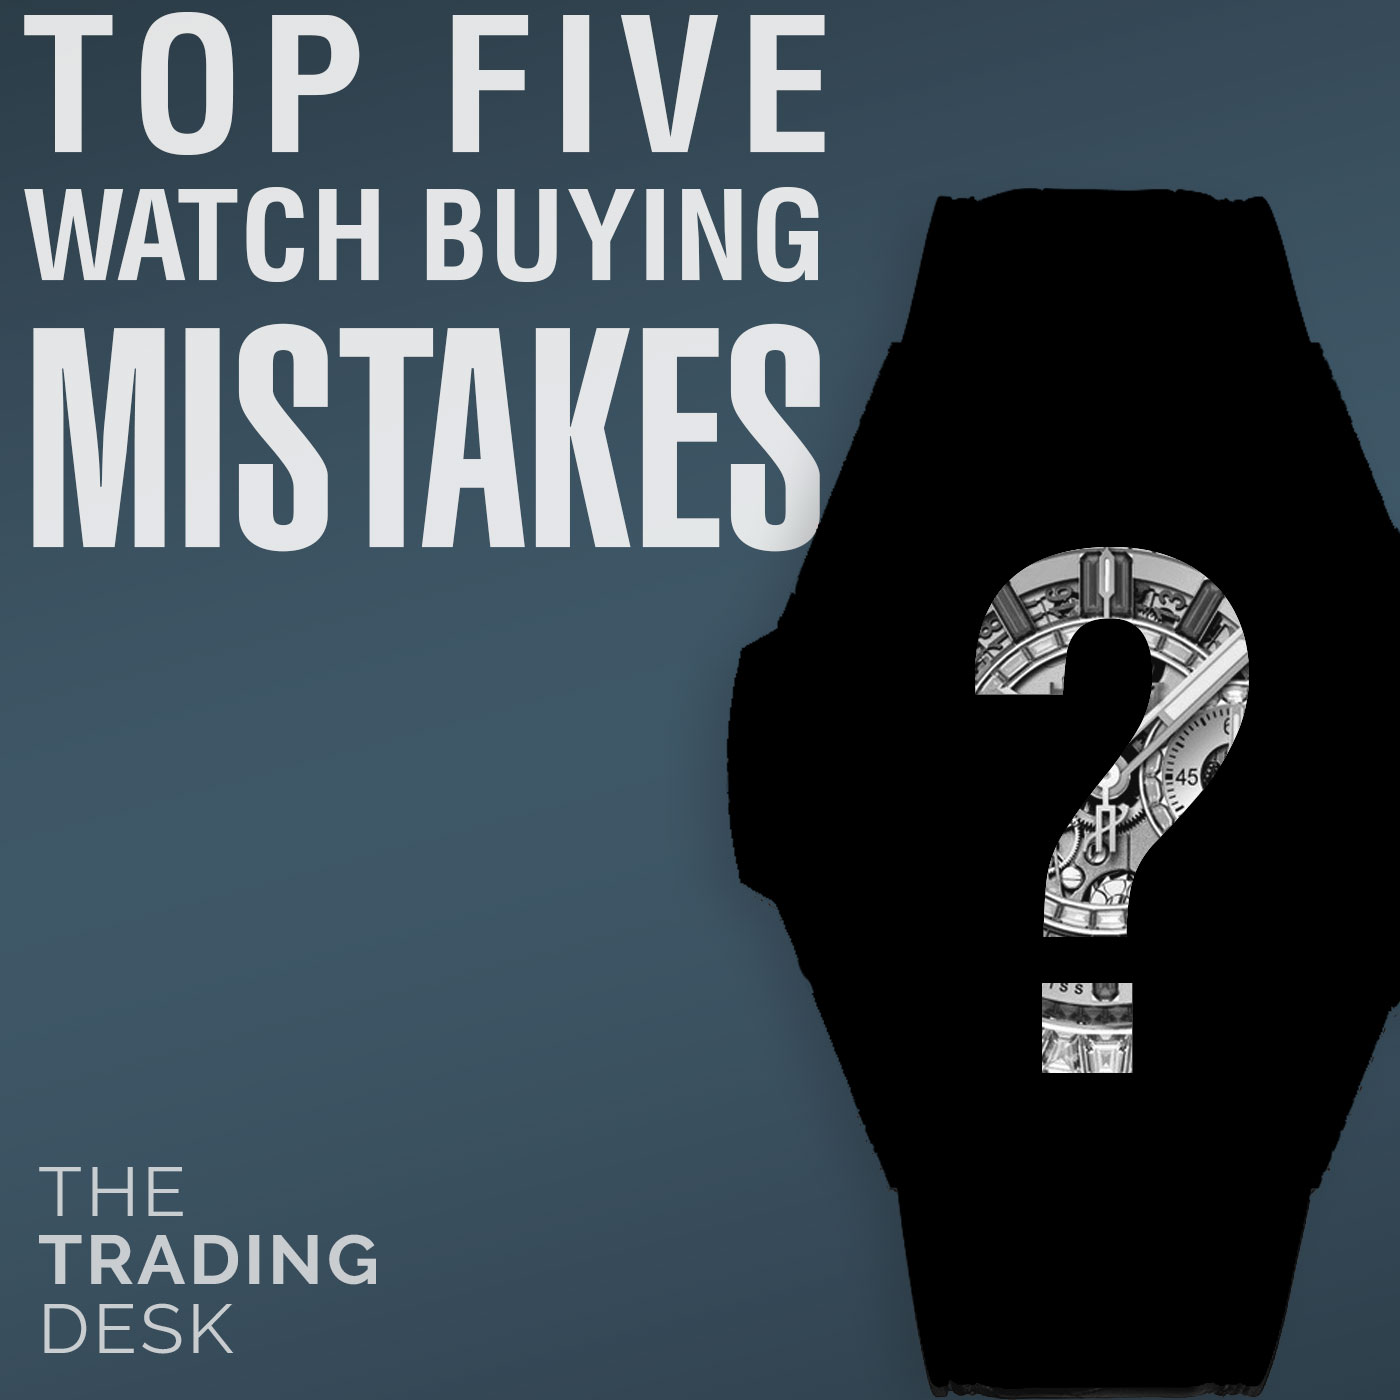 048: The 5 Biggest MISTAKES People Make When Buying Watches